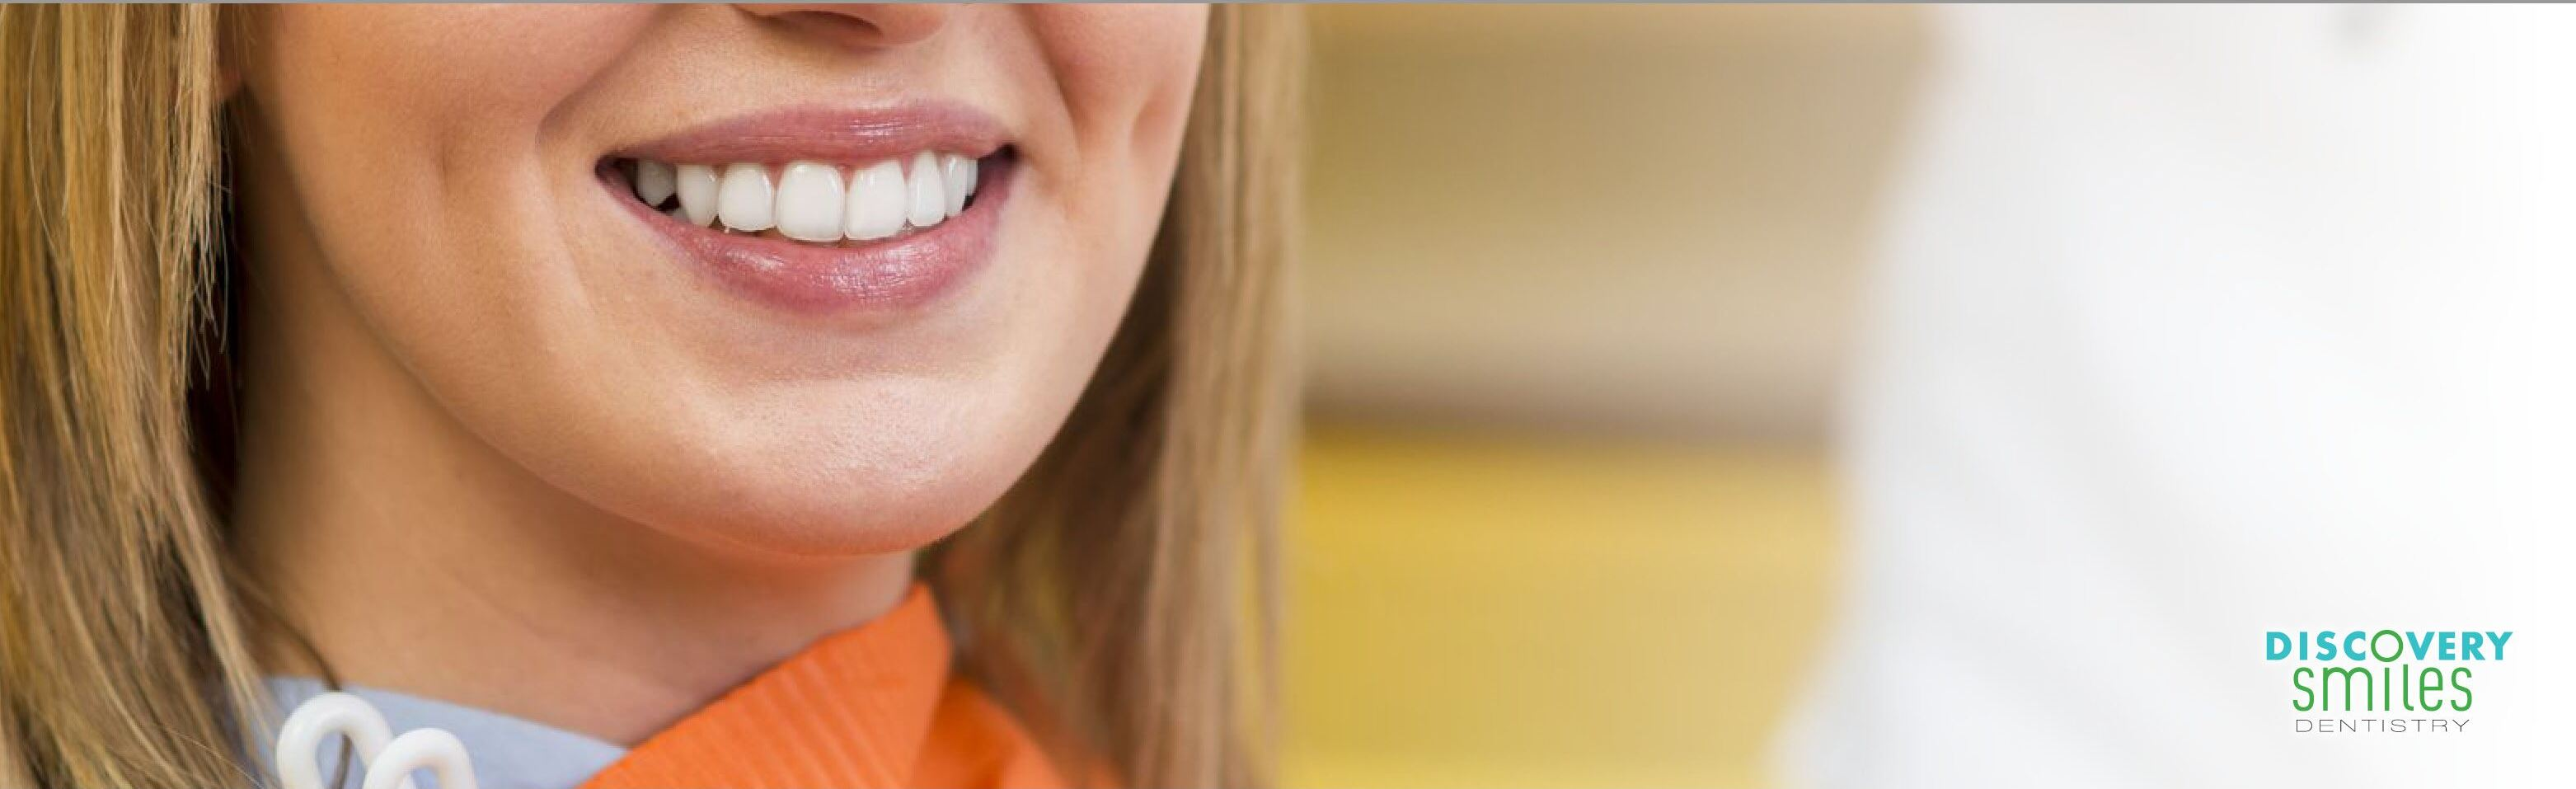 A woman with a beautiful smile portrays the concept of results after seeing a cosmetic dentist in Tucson.